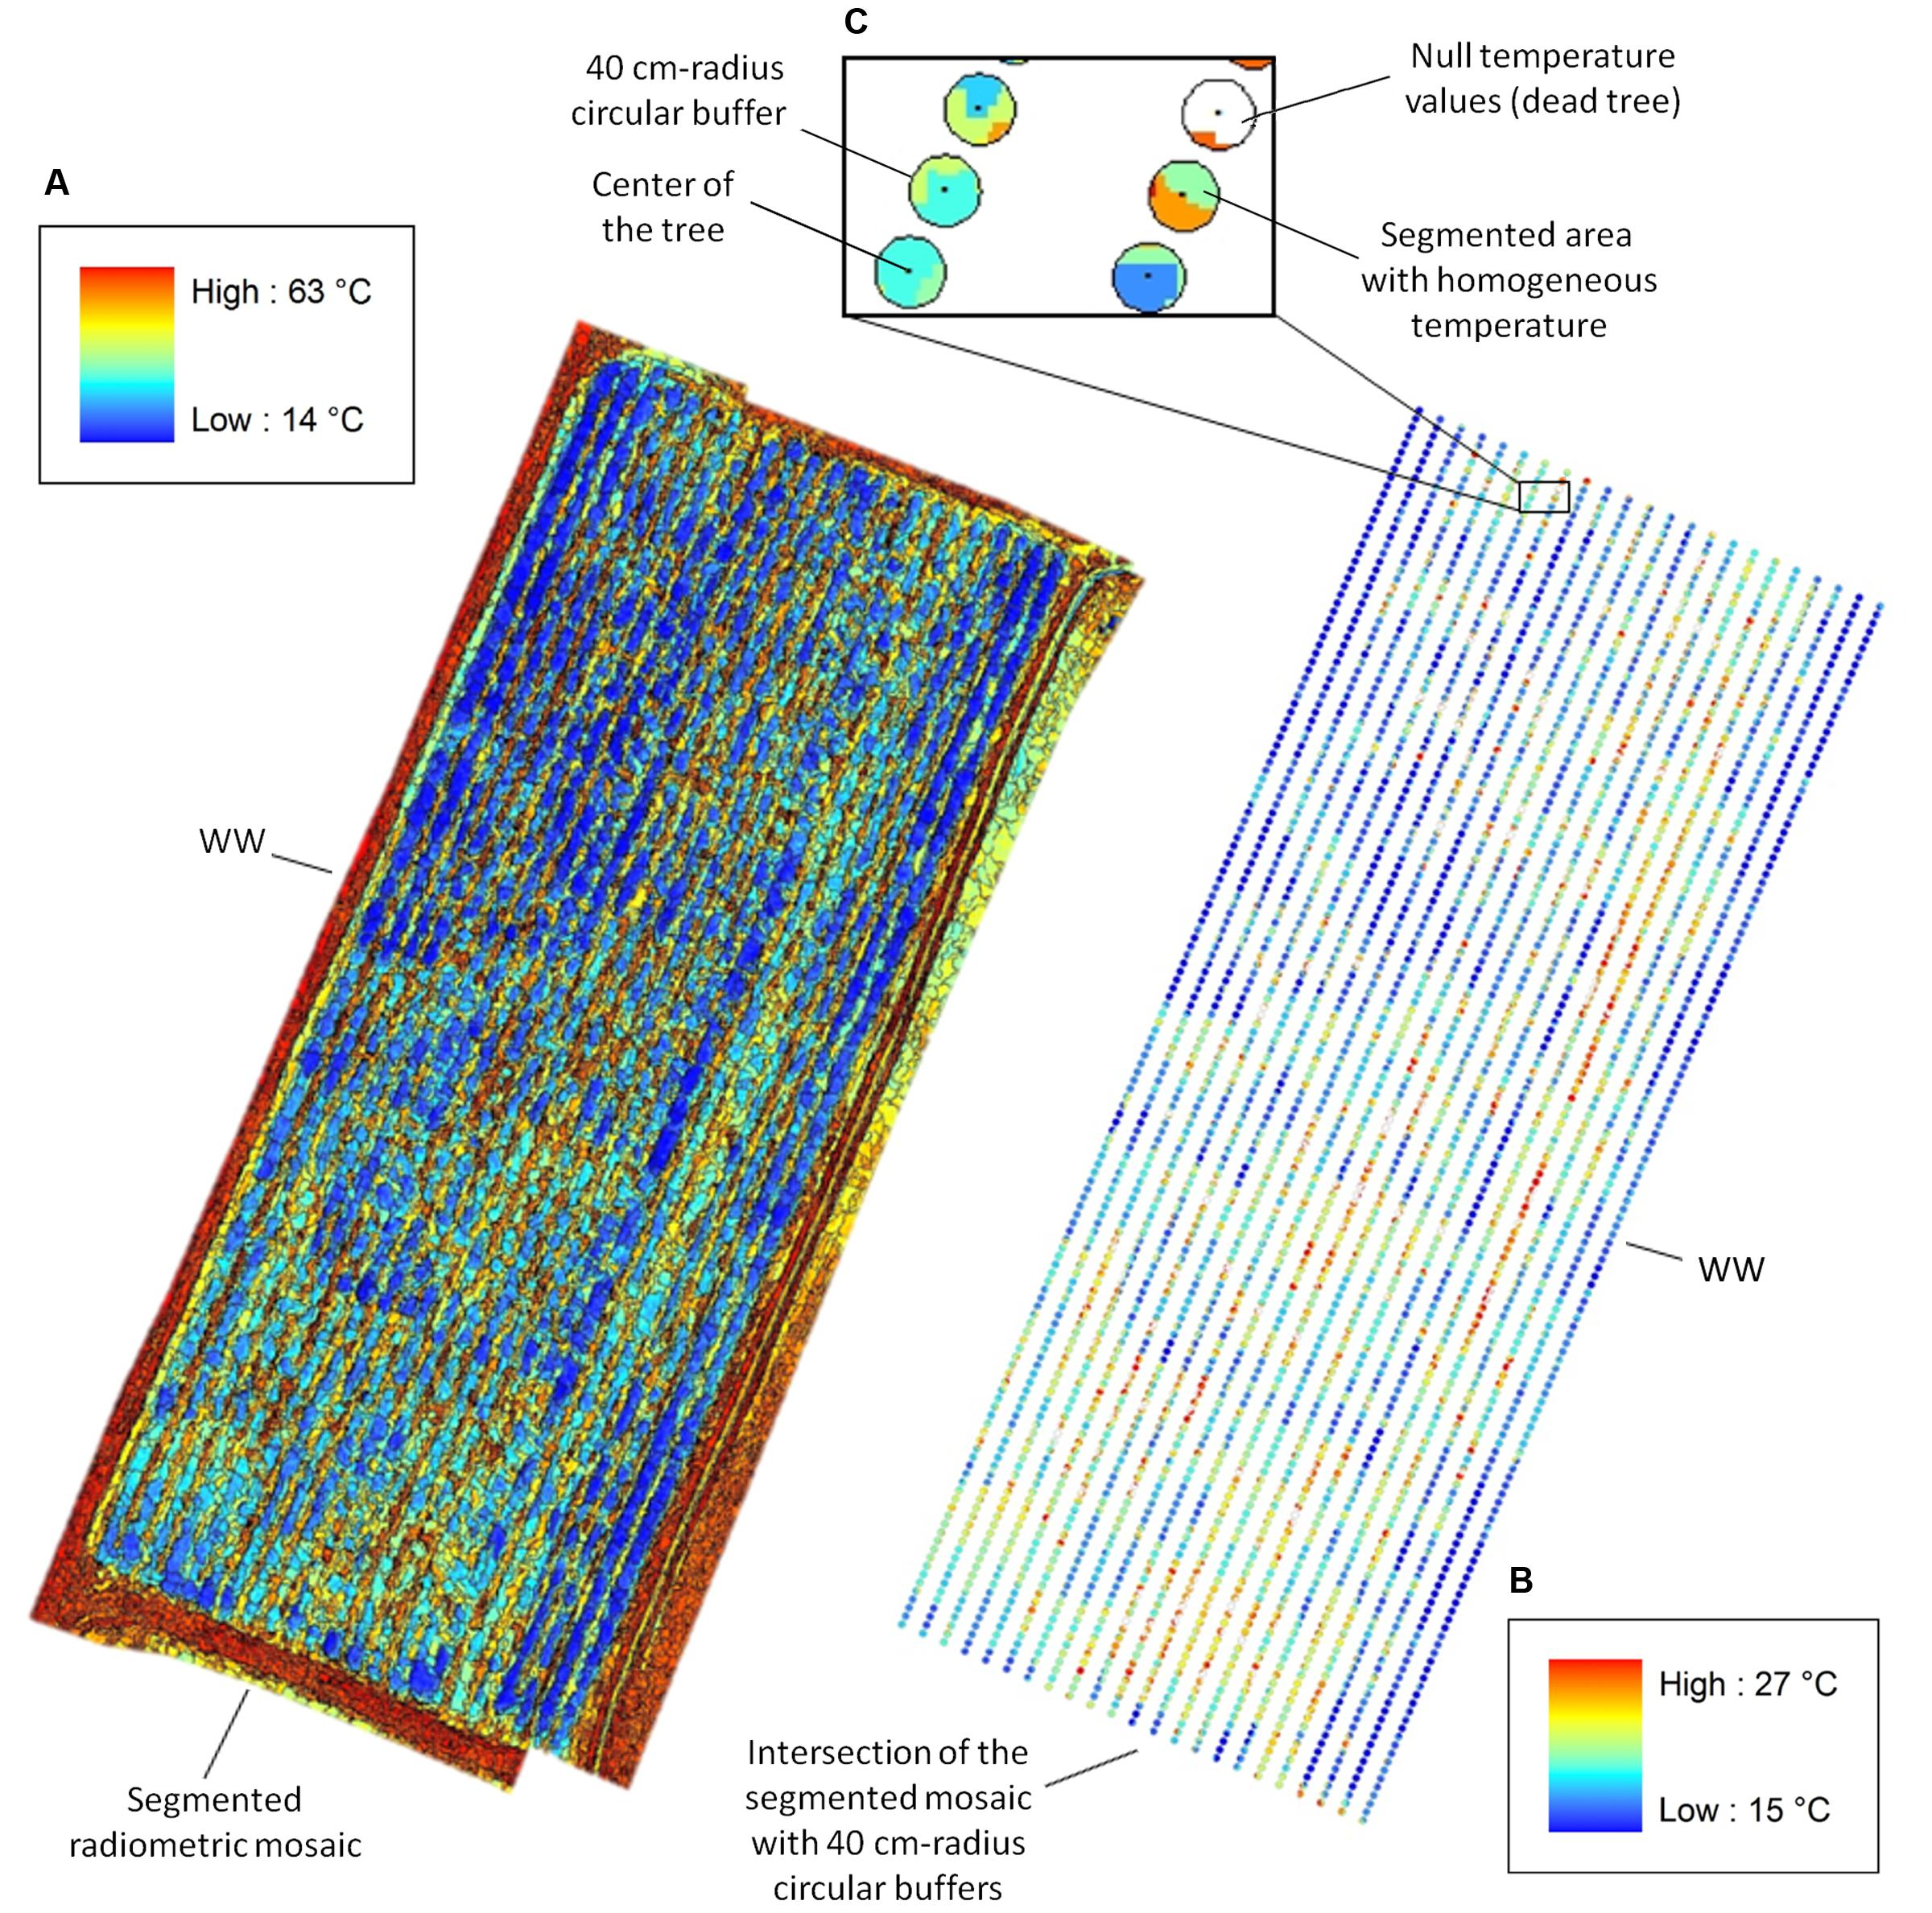 Frontiers | UAV-Based Thermal Imaging for High-Throughput